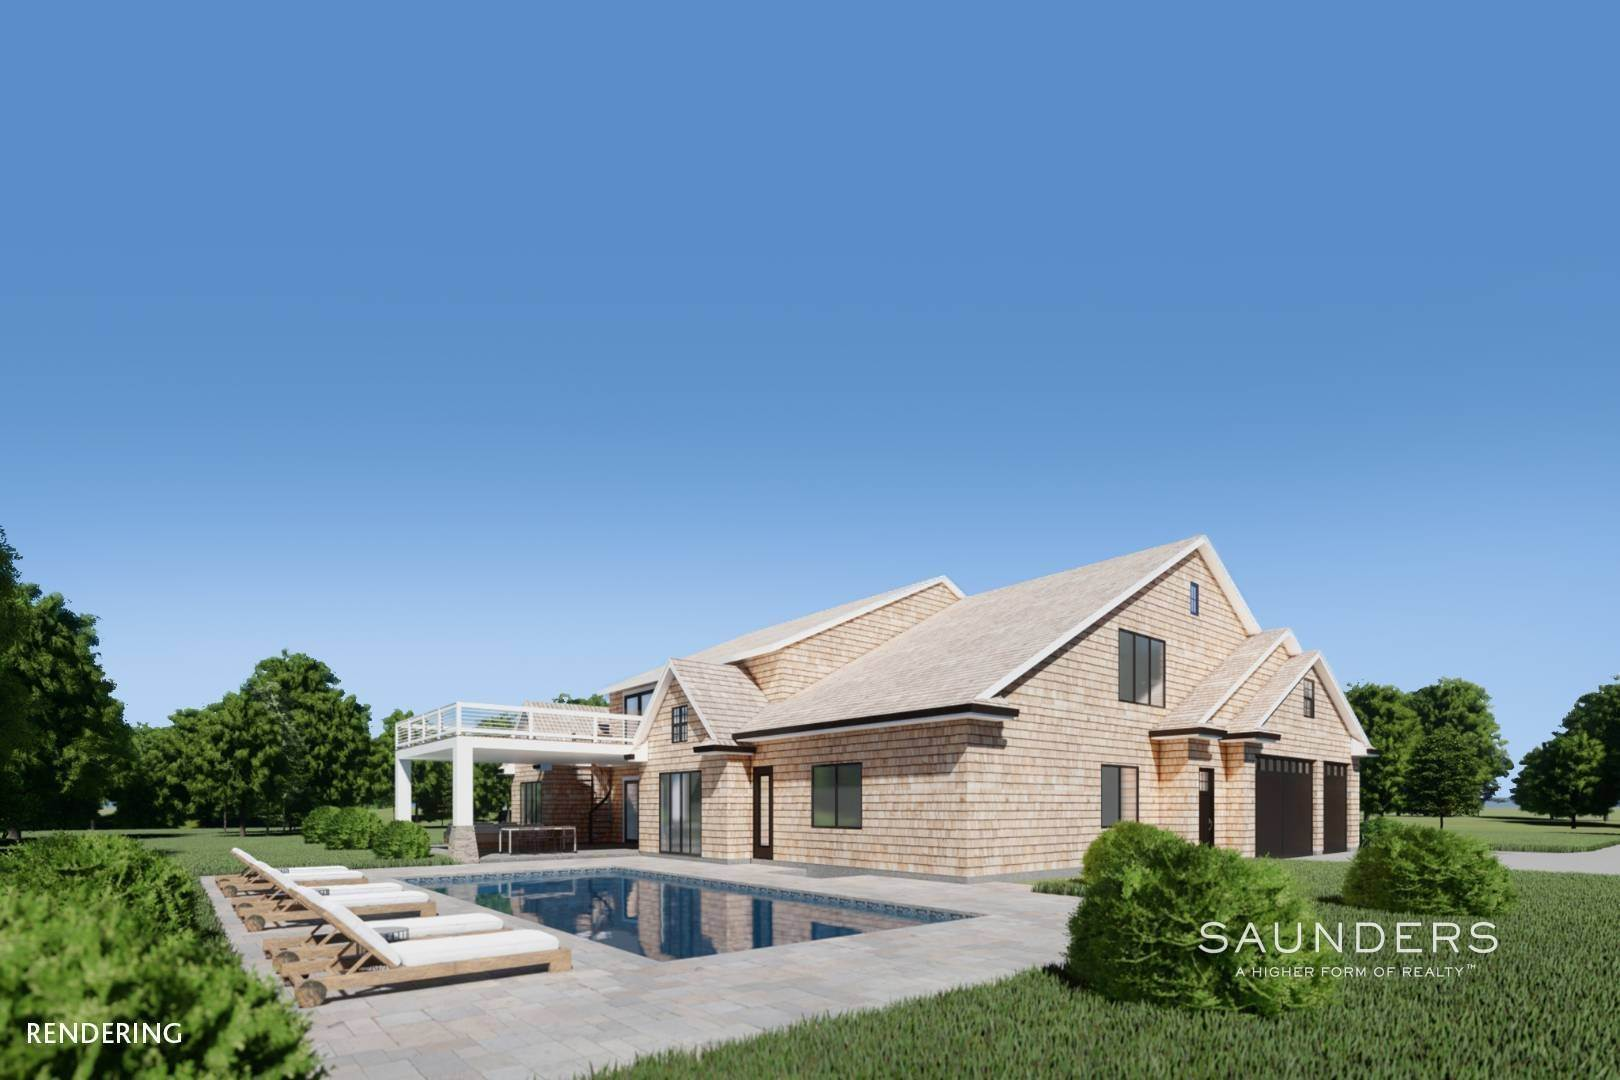 11. Single Family Homes for Sale at New Construction In Sagaponack With Pool 26 Forest Crossing, Sagaponack, Southampton Town, NY 11962